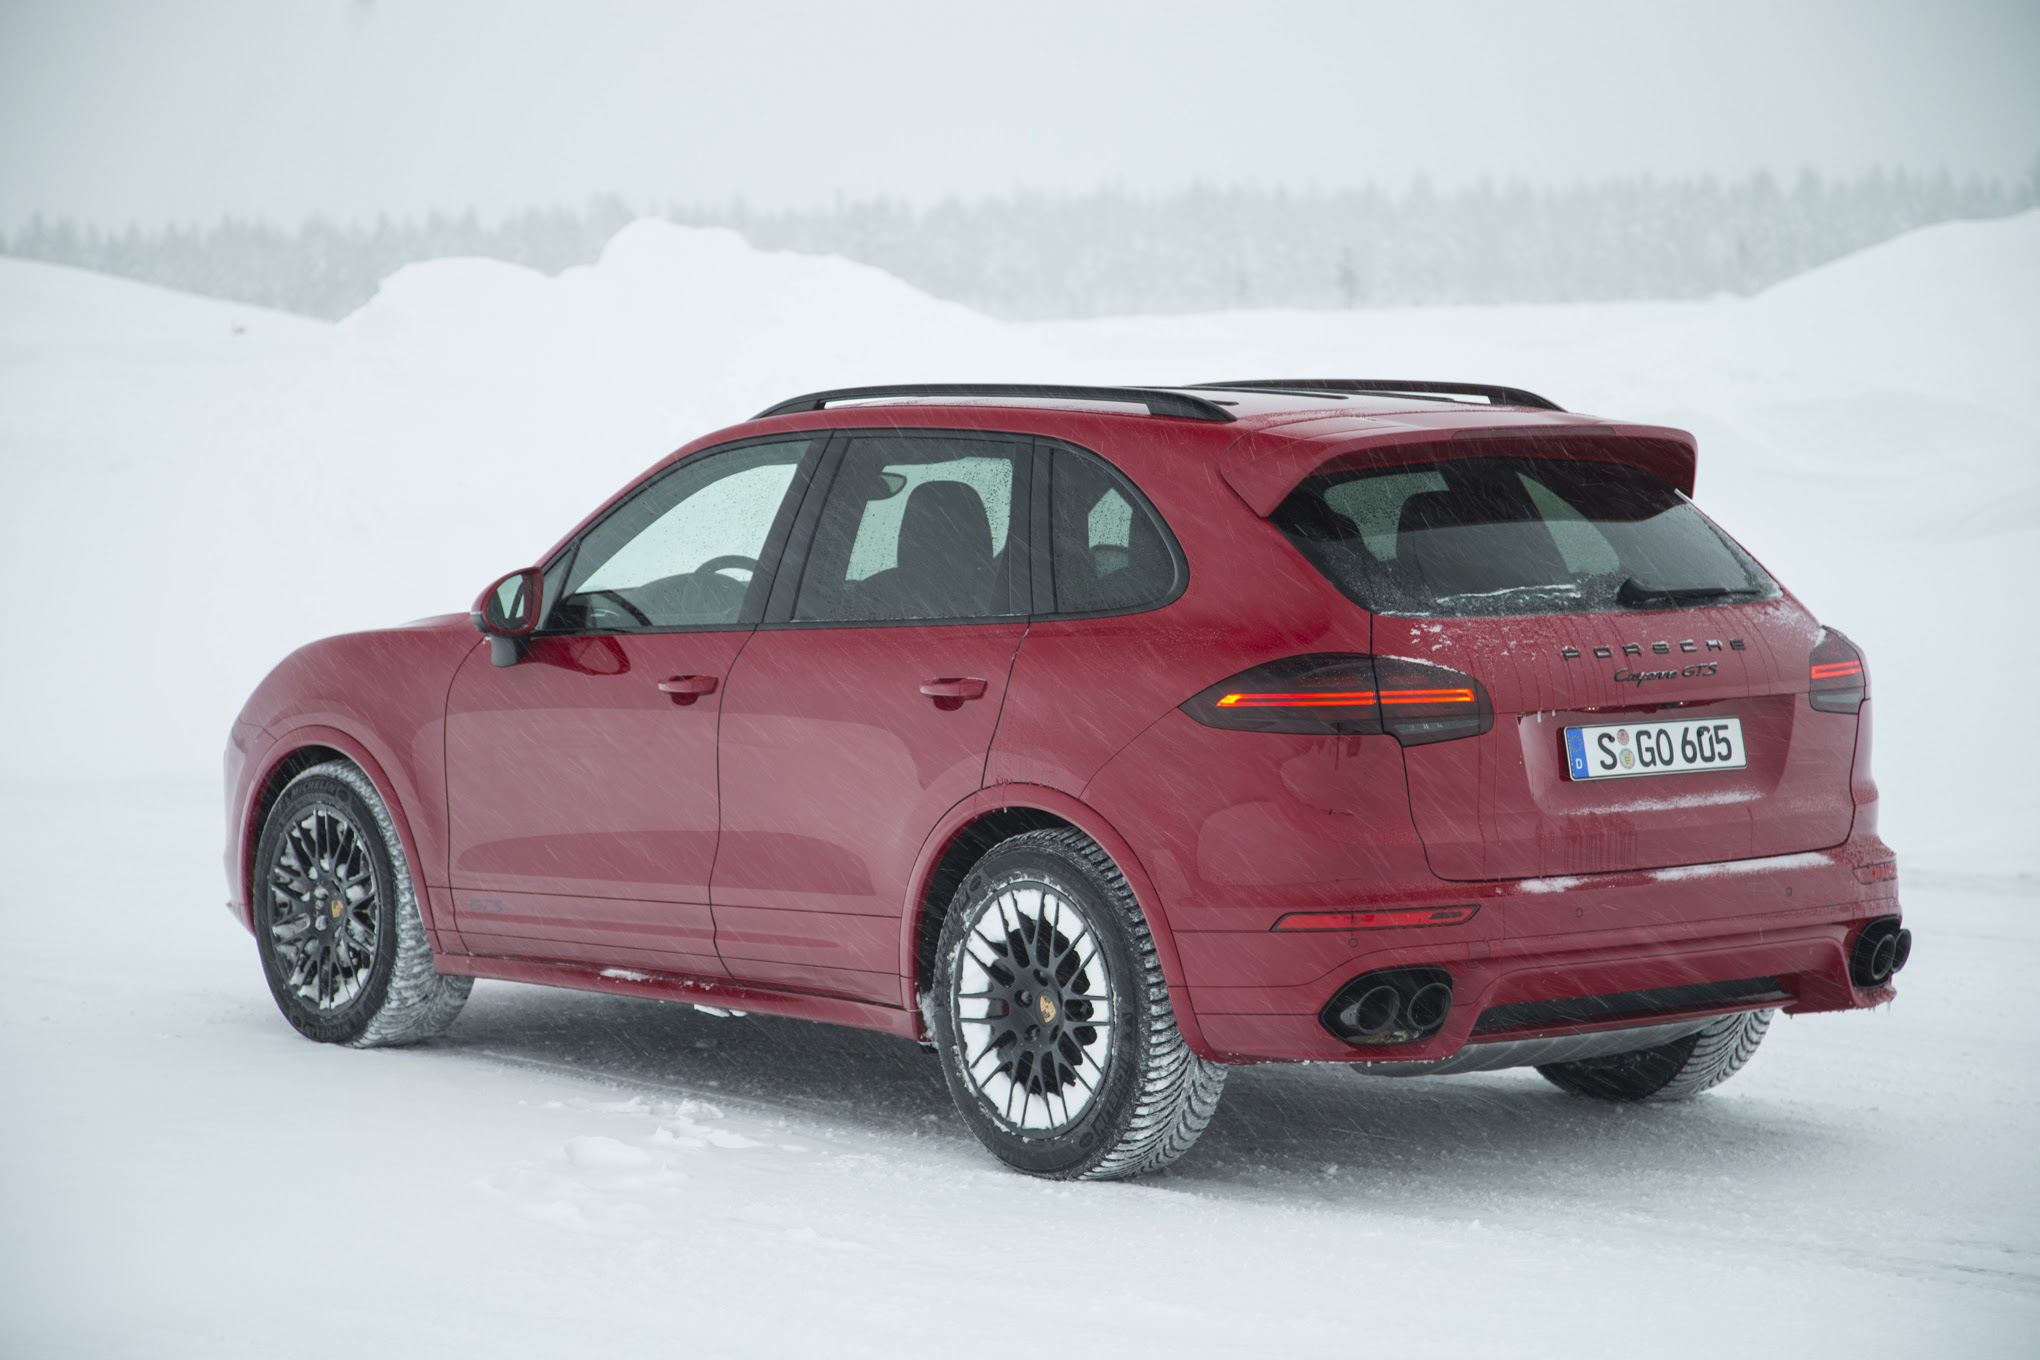 2016 Porsche Cayenne Gts Turbo S Review Automobile